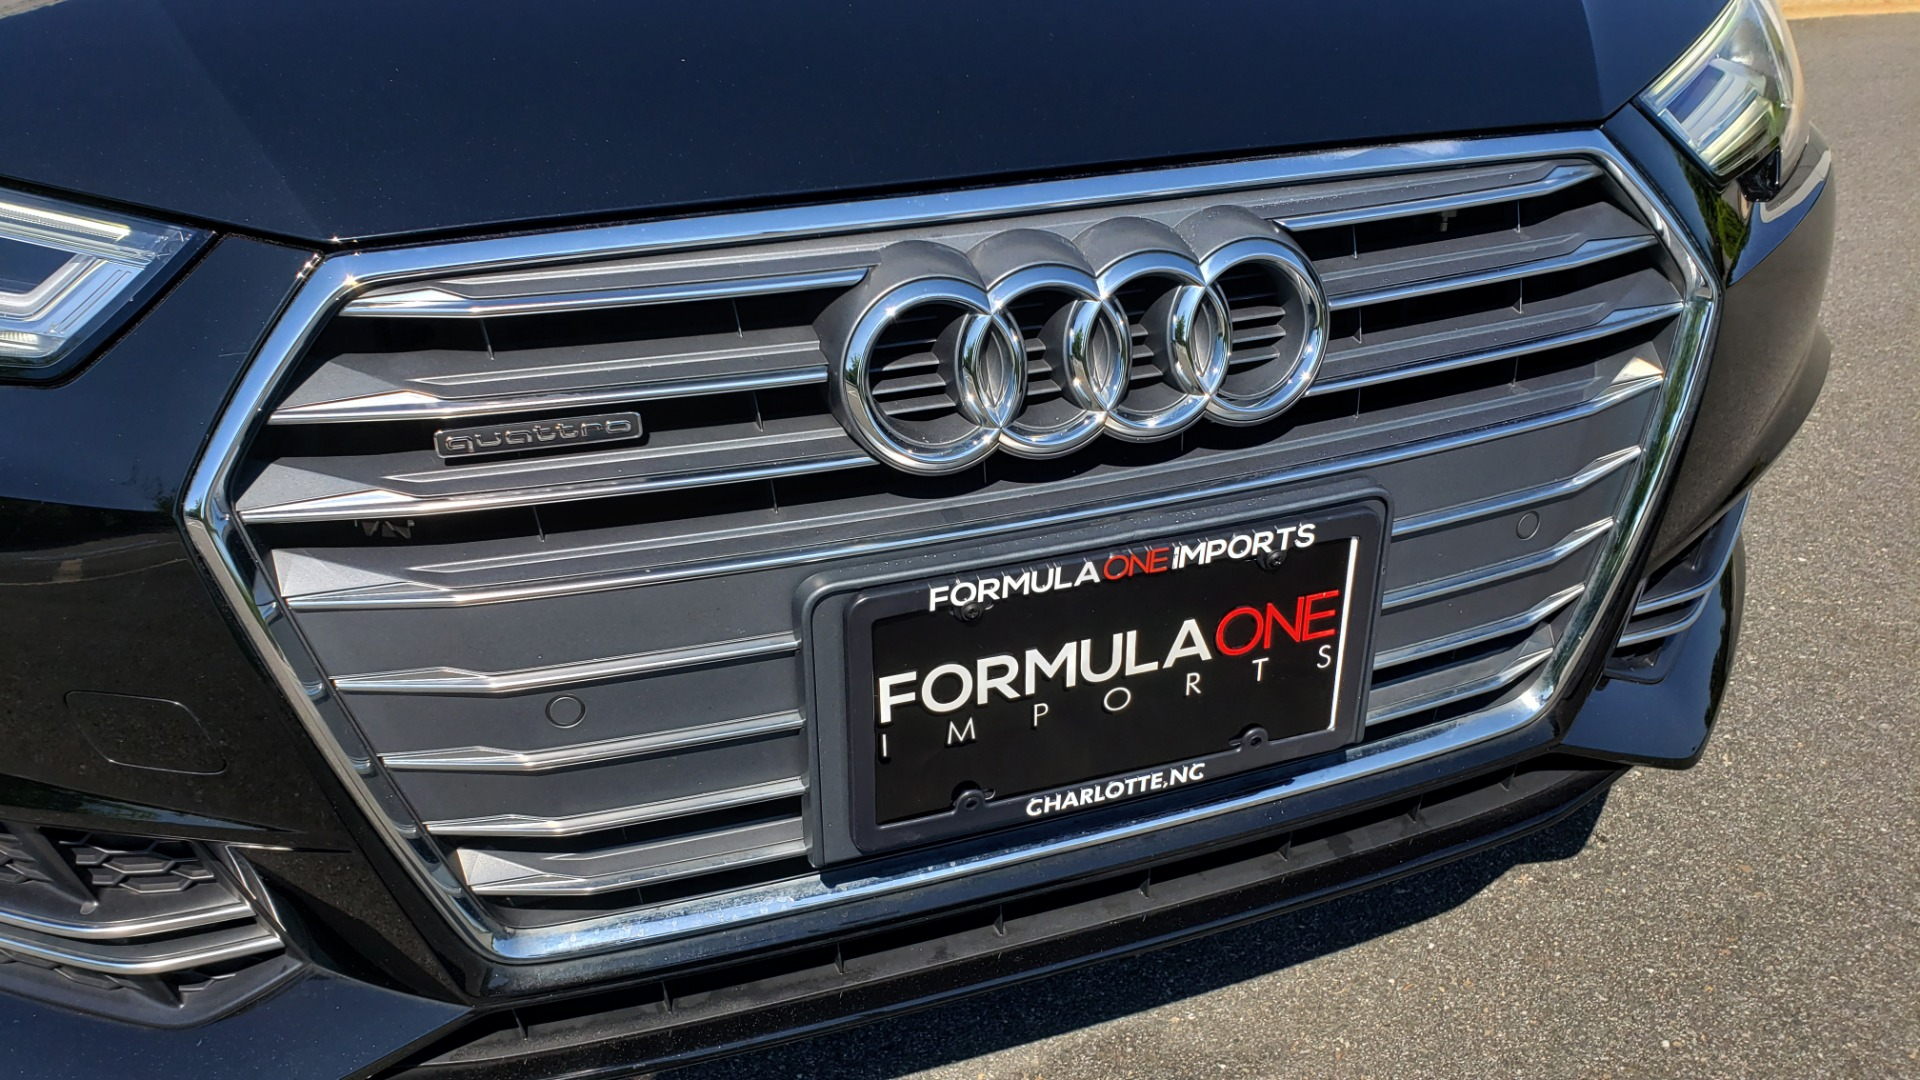 Used 2018 Audi A4 PREMIUM PLUS 2.0T / NAV / SUNROOF / B&O SND / CLD WTHR / REARVIEW for sale $30,695 at Formula Imports in Charlotte NC 28227 23